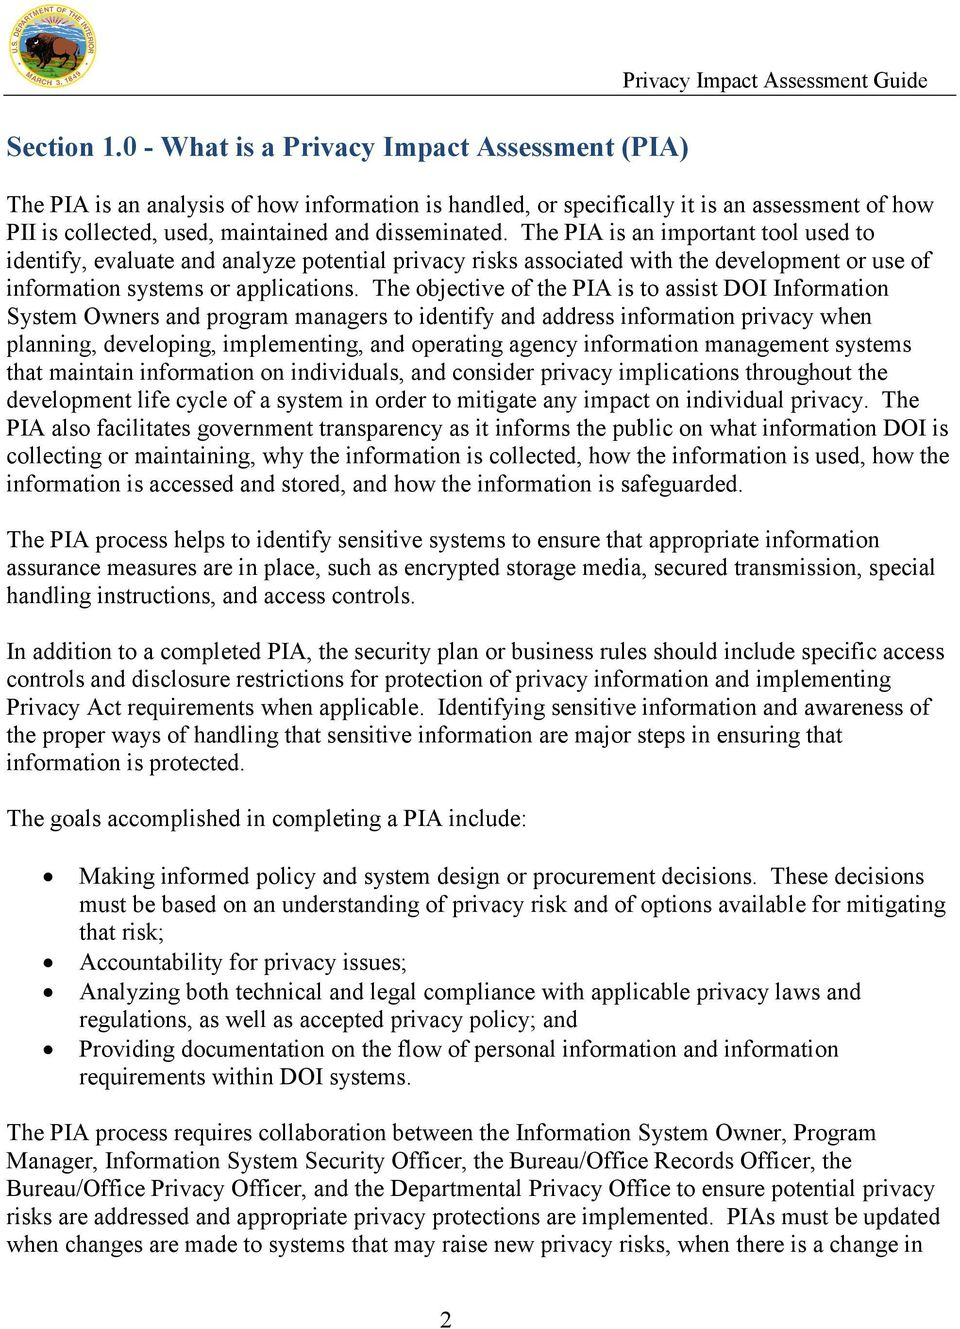 maintained and disseminated. The PIA is an important tool used to identify, evaluate and analyze potential privacy risks associated with the development or use of information systems or applications.